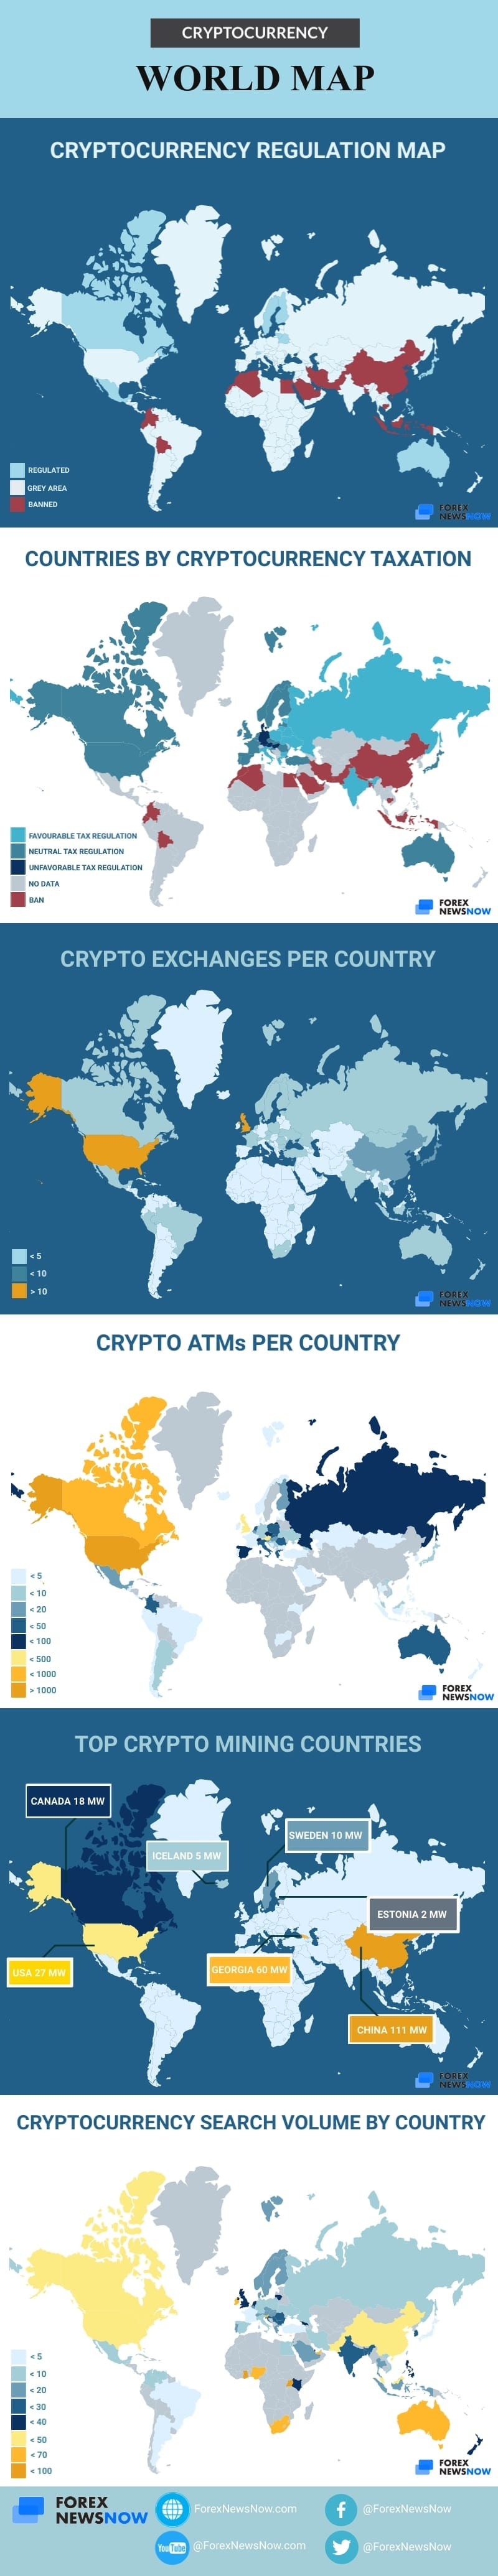 Growth of Cryptocurrencies